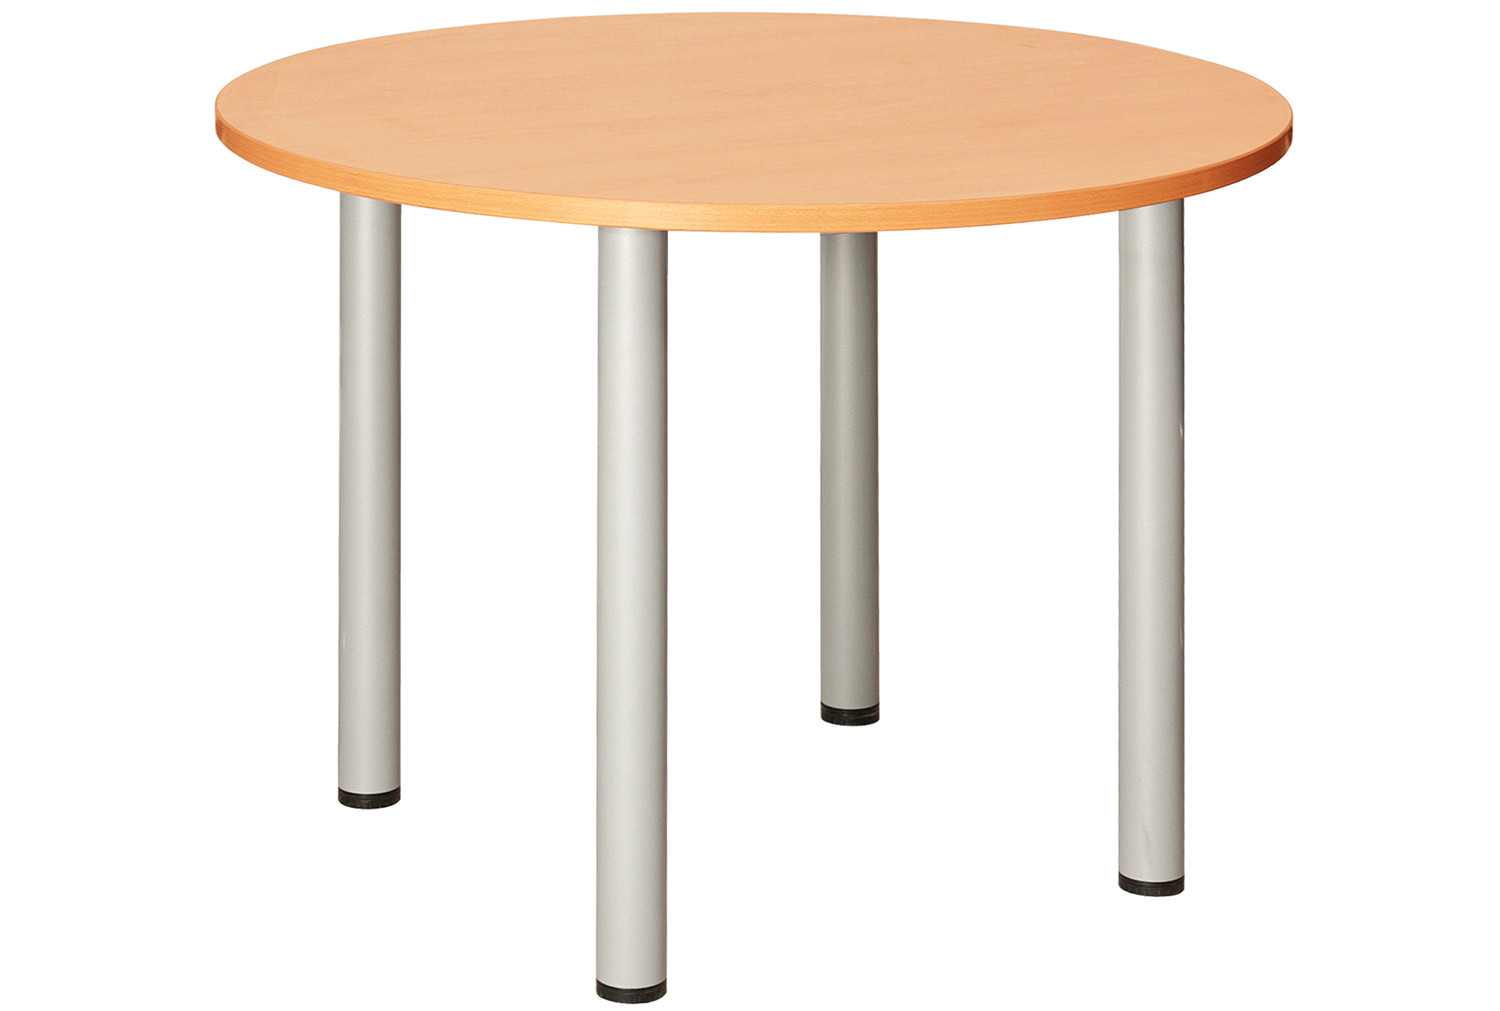 Proteus Round Meeting Table